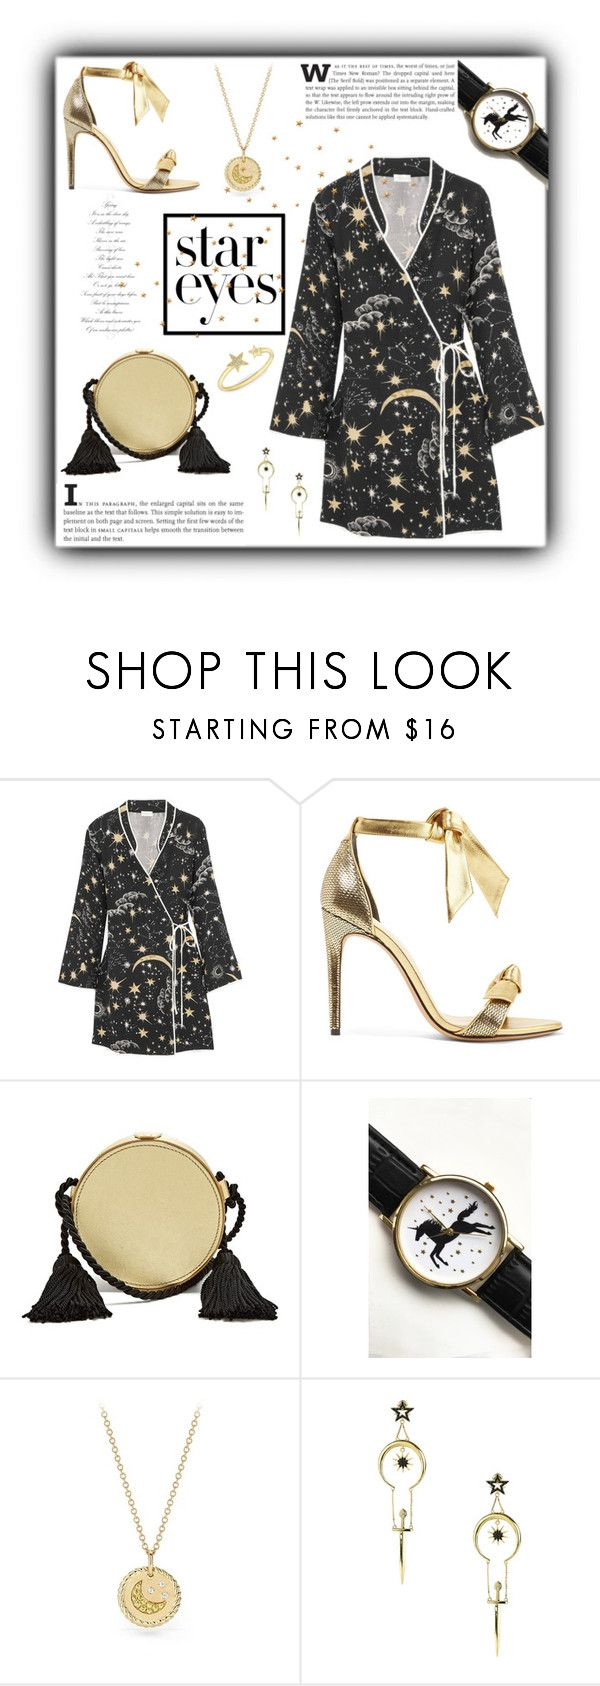 """#1539@"" by koi-beauty ❤ liked on Polyvore featuring RIXO London, Alexandre Birman, Hillier Bartley, Tallulah's Threads, David Yurman, nOir and StarOutfits"